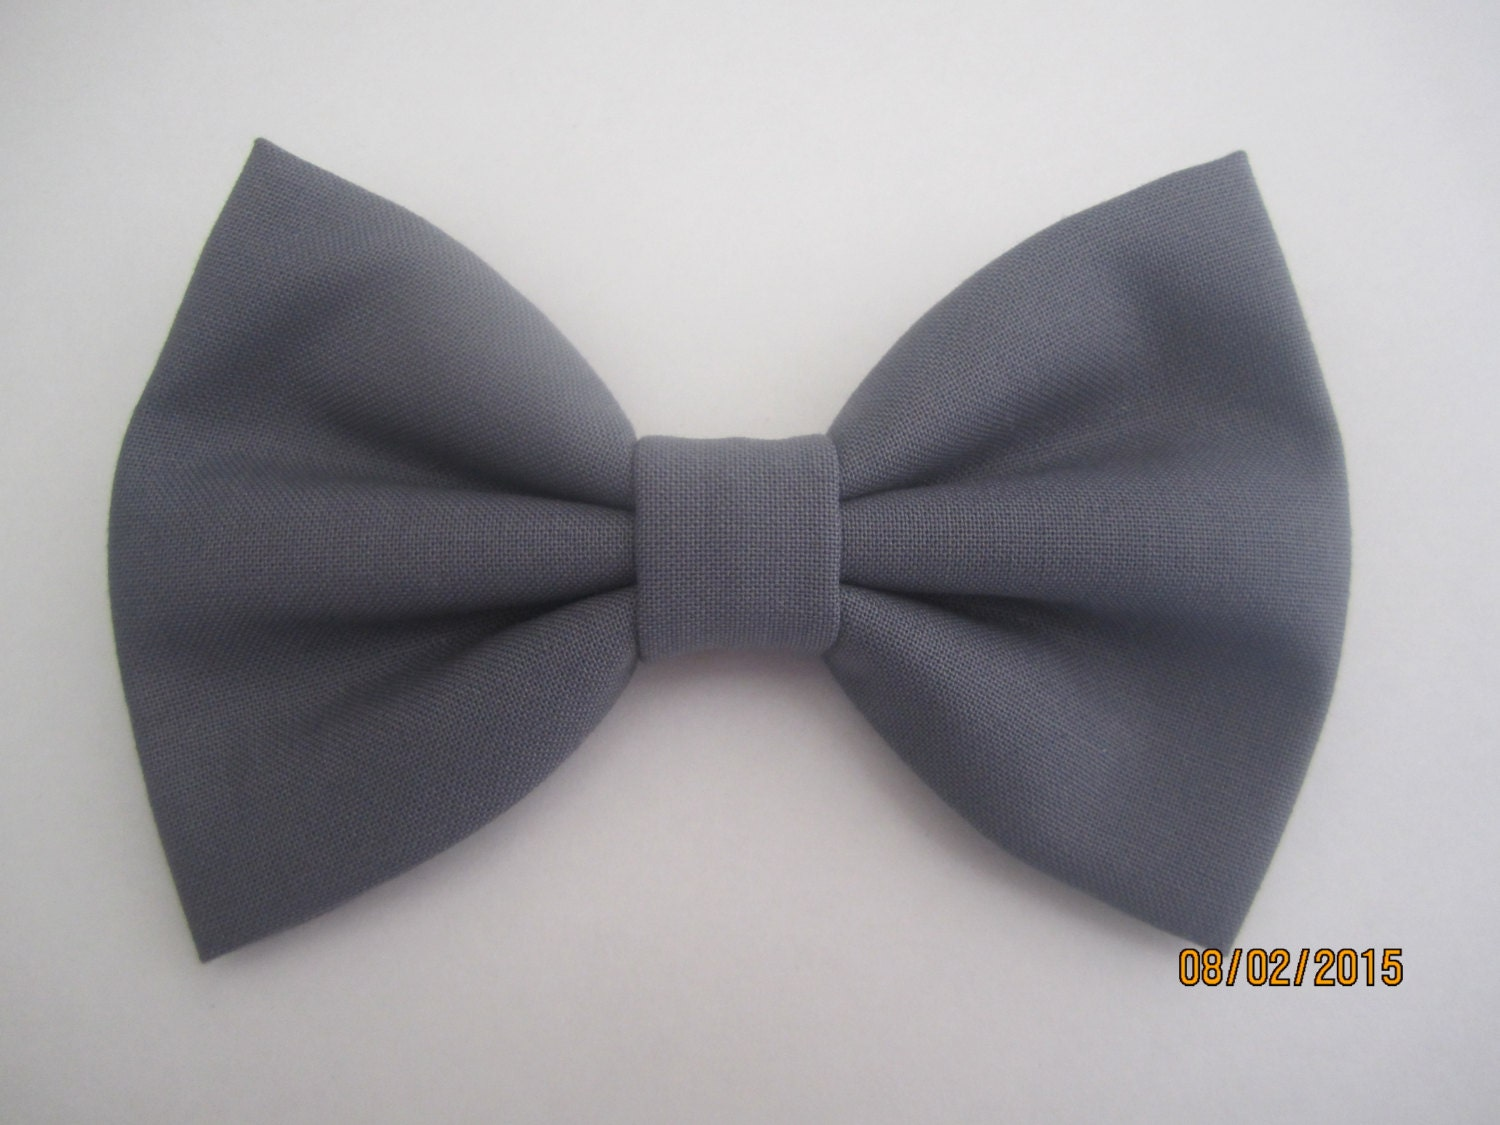 Suspender and Bow Tie Matching Colors. Pre-tied band style with a clip BowTie. for a great accessory to a tuxedo or a suit. A great formal classical style bow tie with a clip.